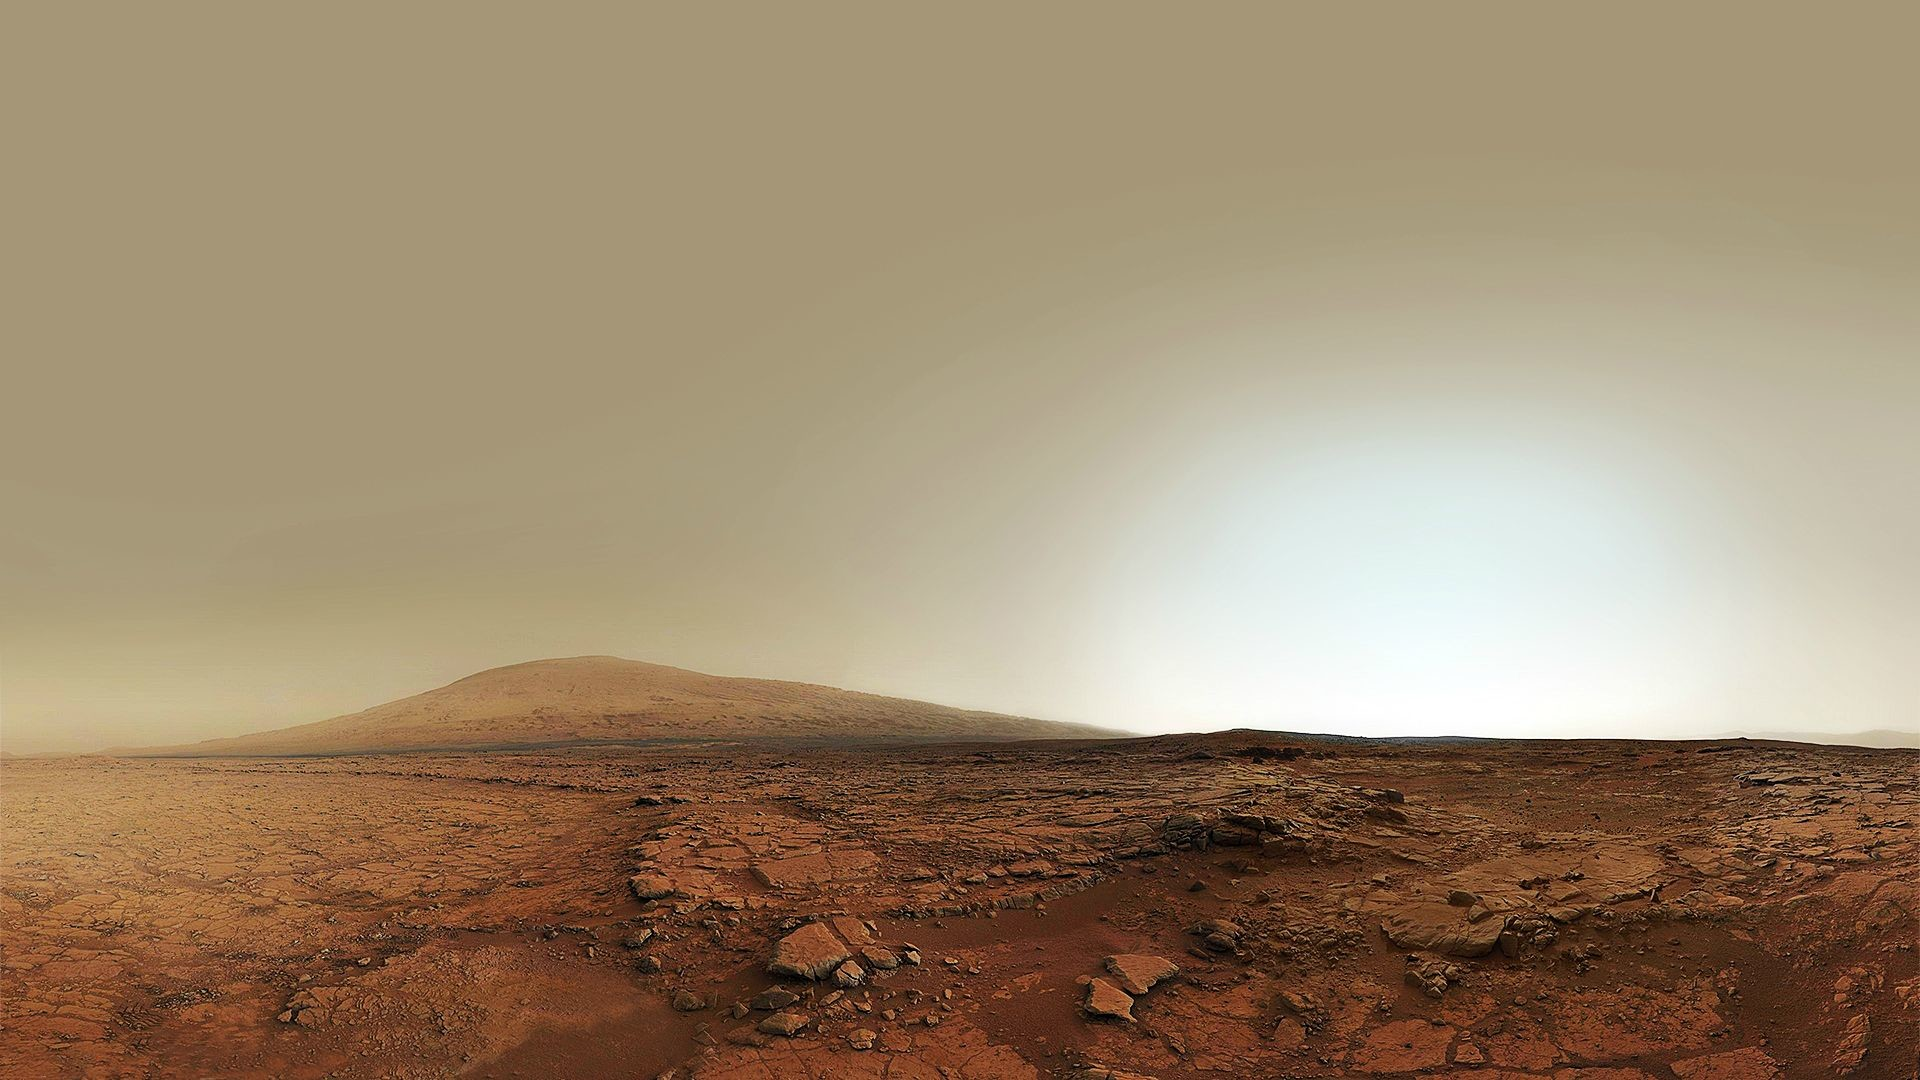 Mars rover wallpaper